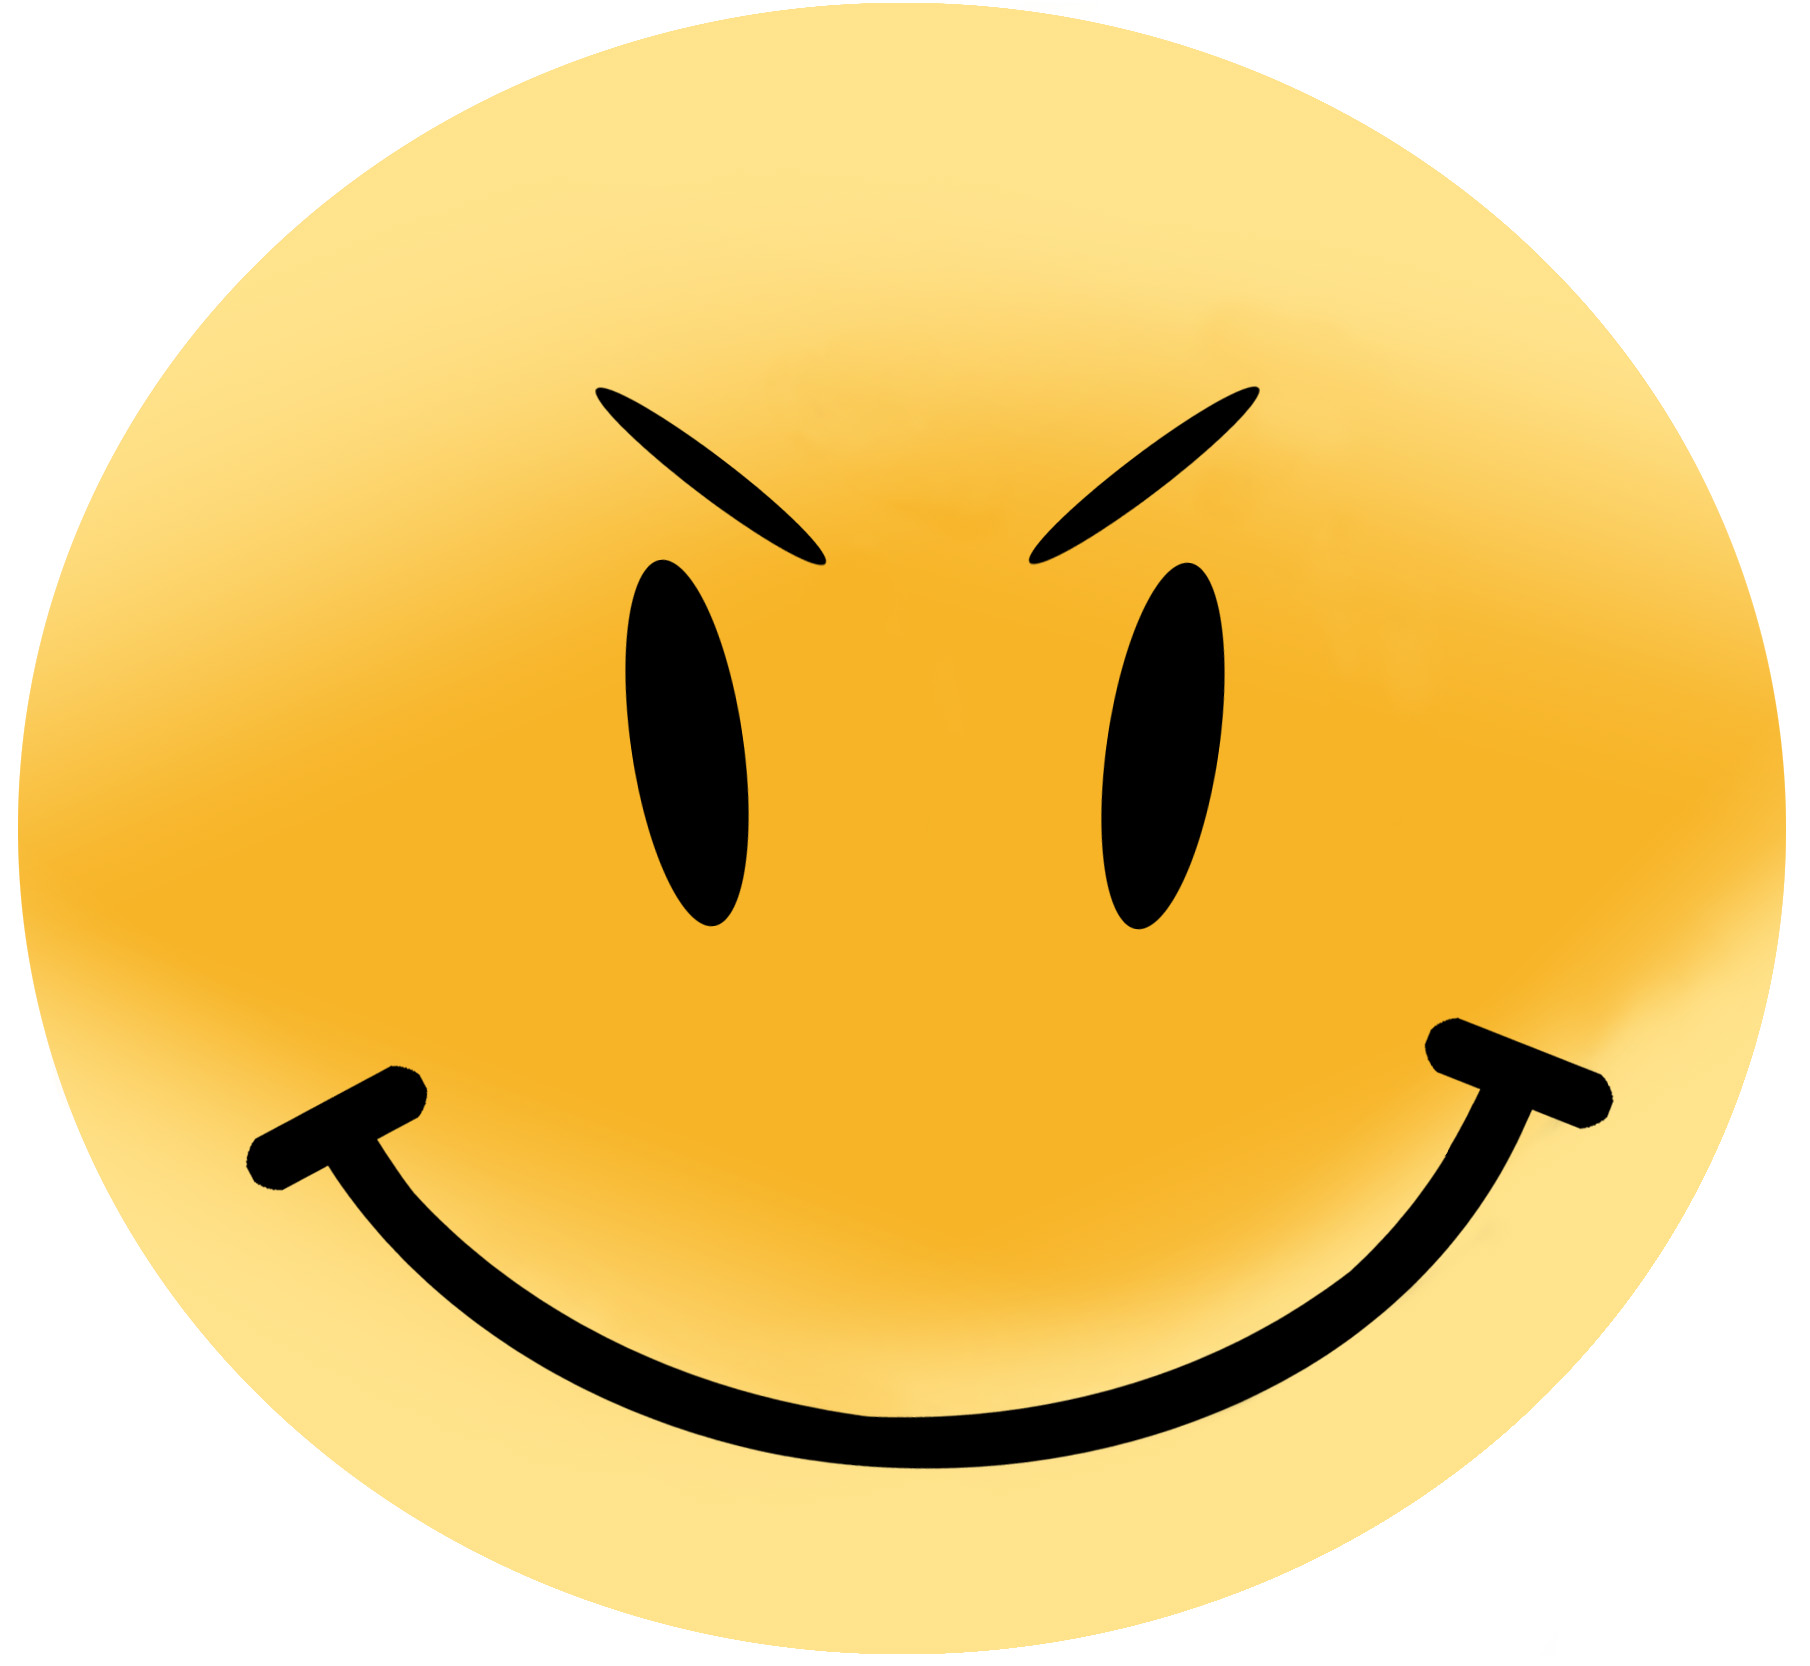 Evil smiley face clipart png free stock Evil Smiley Face Clip Art N10 free image png free stock